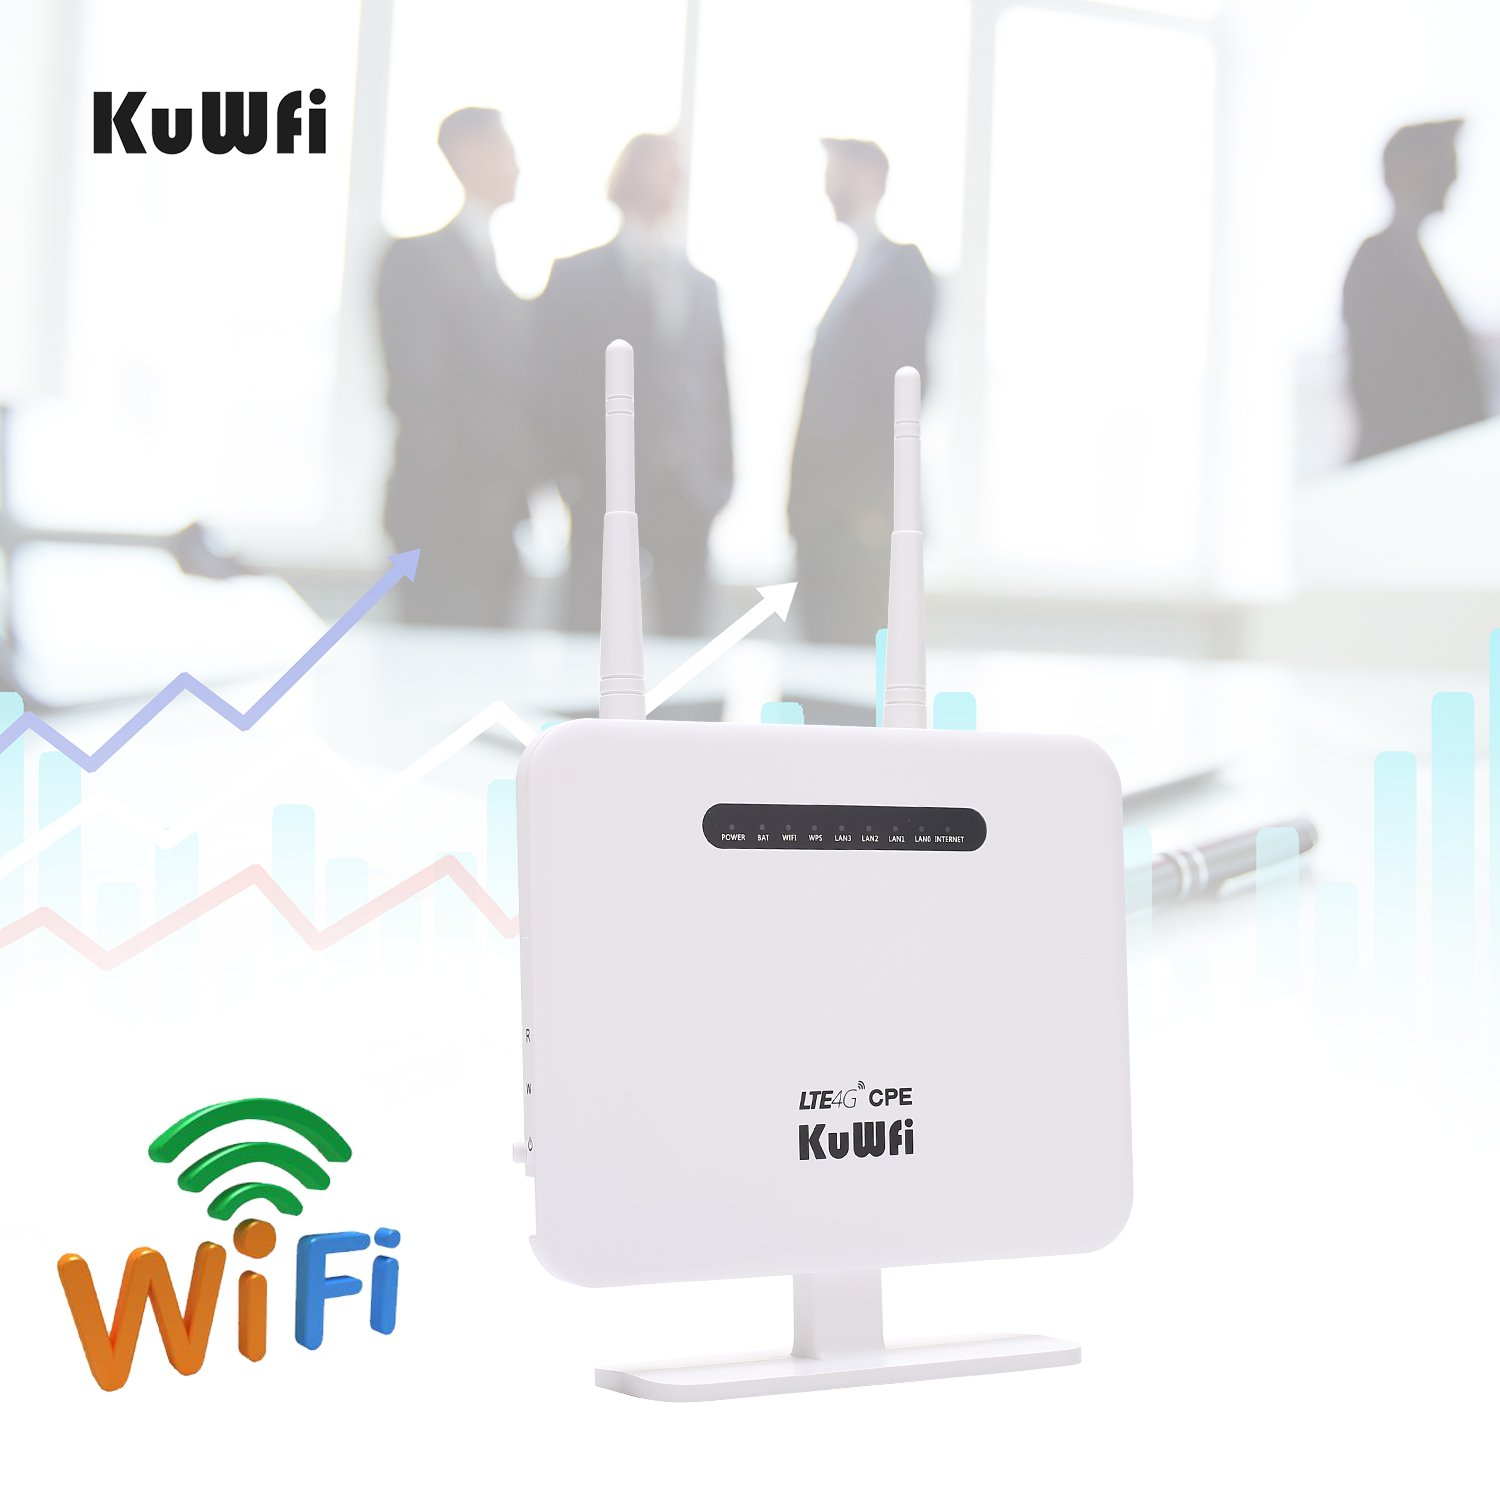 KuWFi US verison at&T/T Mobile 4G LTE CPE Router,300Mbps Unlocked 4G LTE CPE Wireless Router Antenna 3G 4G AP WiFi Router WFi Hotspot with SIM Card Solt for USA/CA/Mexico with B2/B4/B5 Network Band